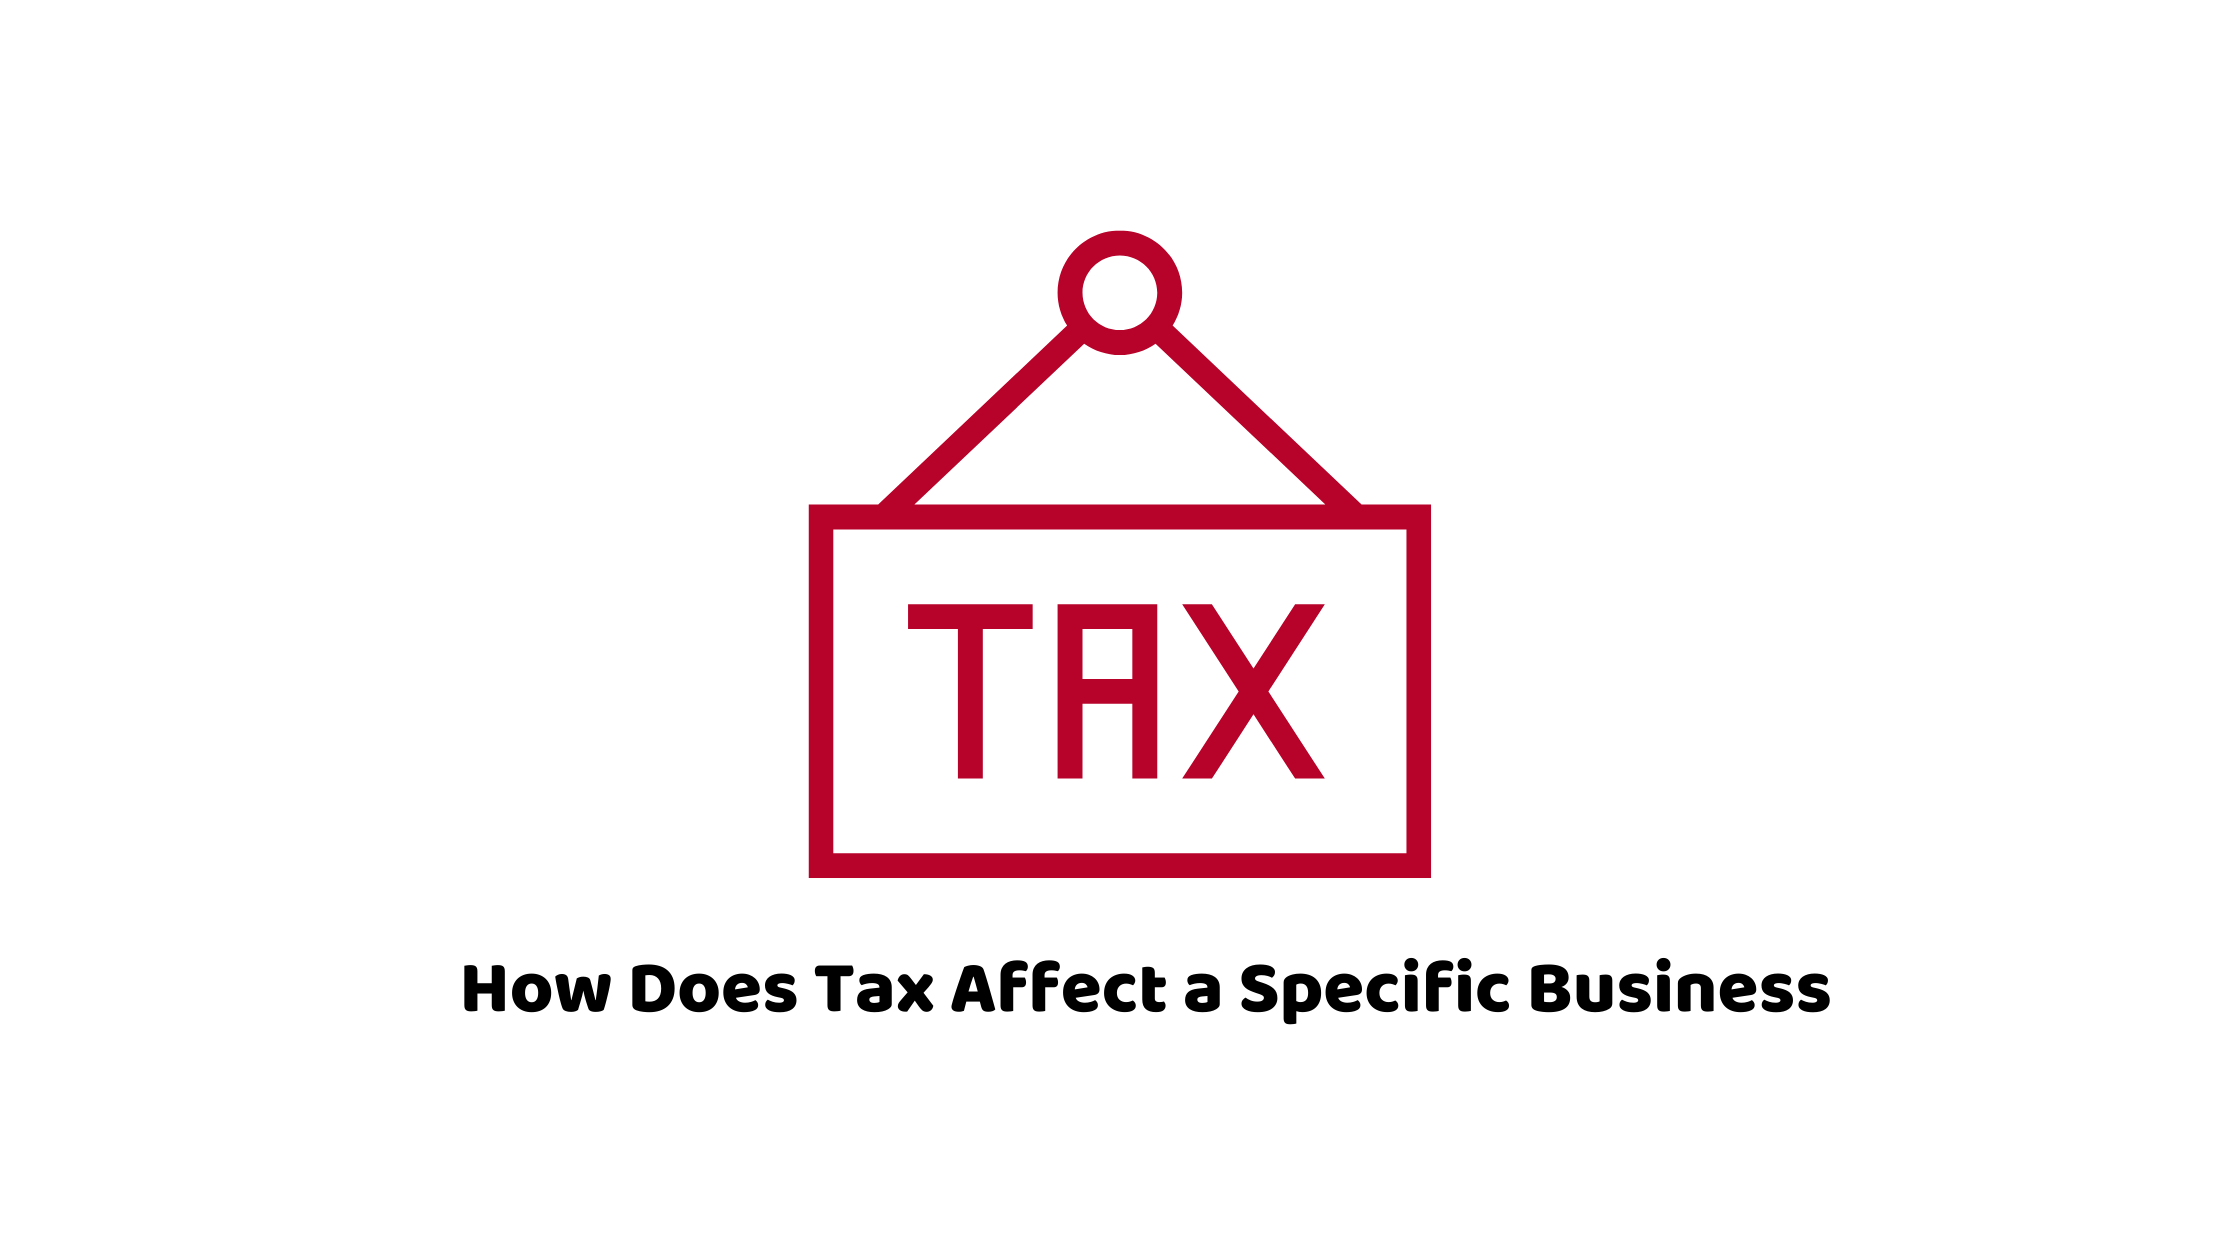 Tax Affect a Specific Business